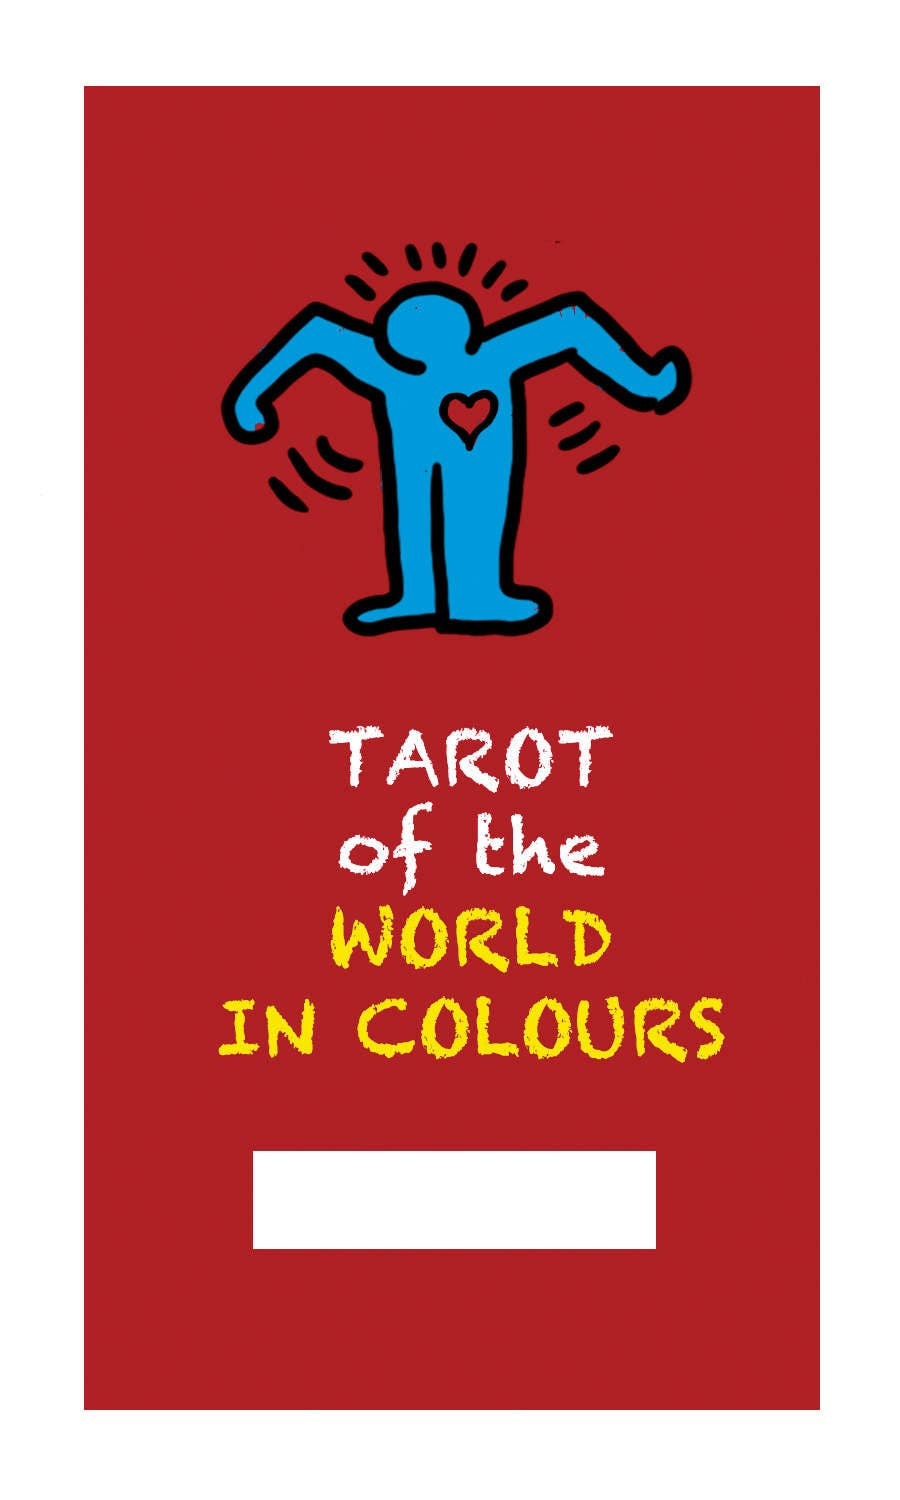 Magic Tarot Card Deck The World in Colours for intuitive